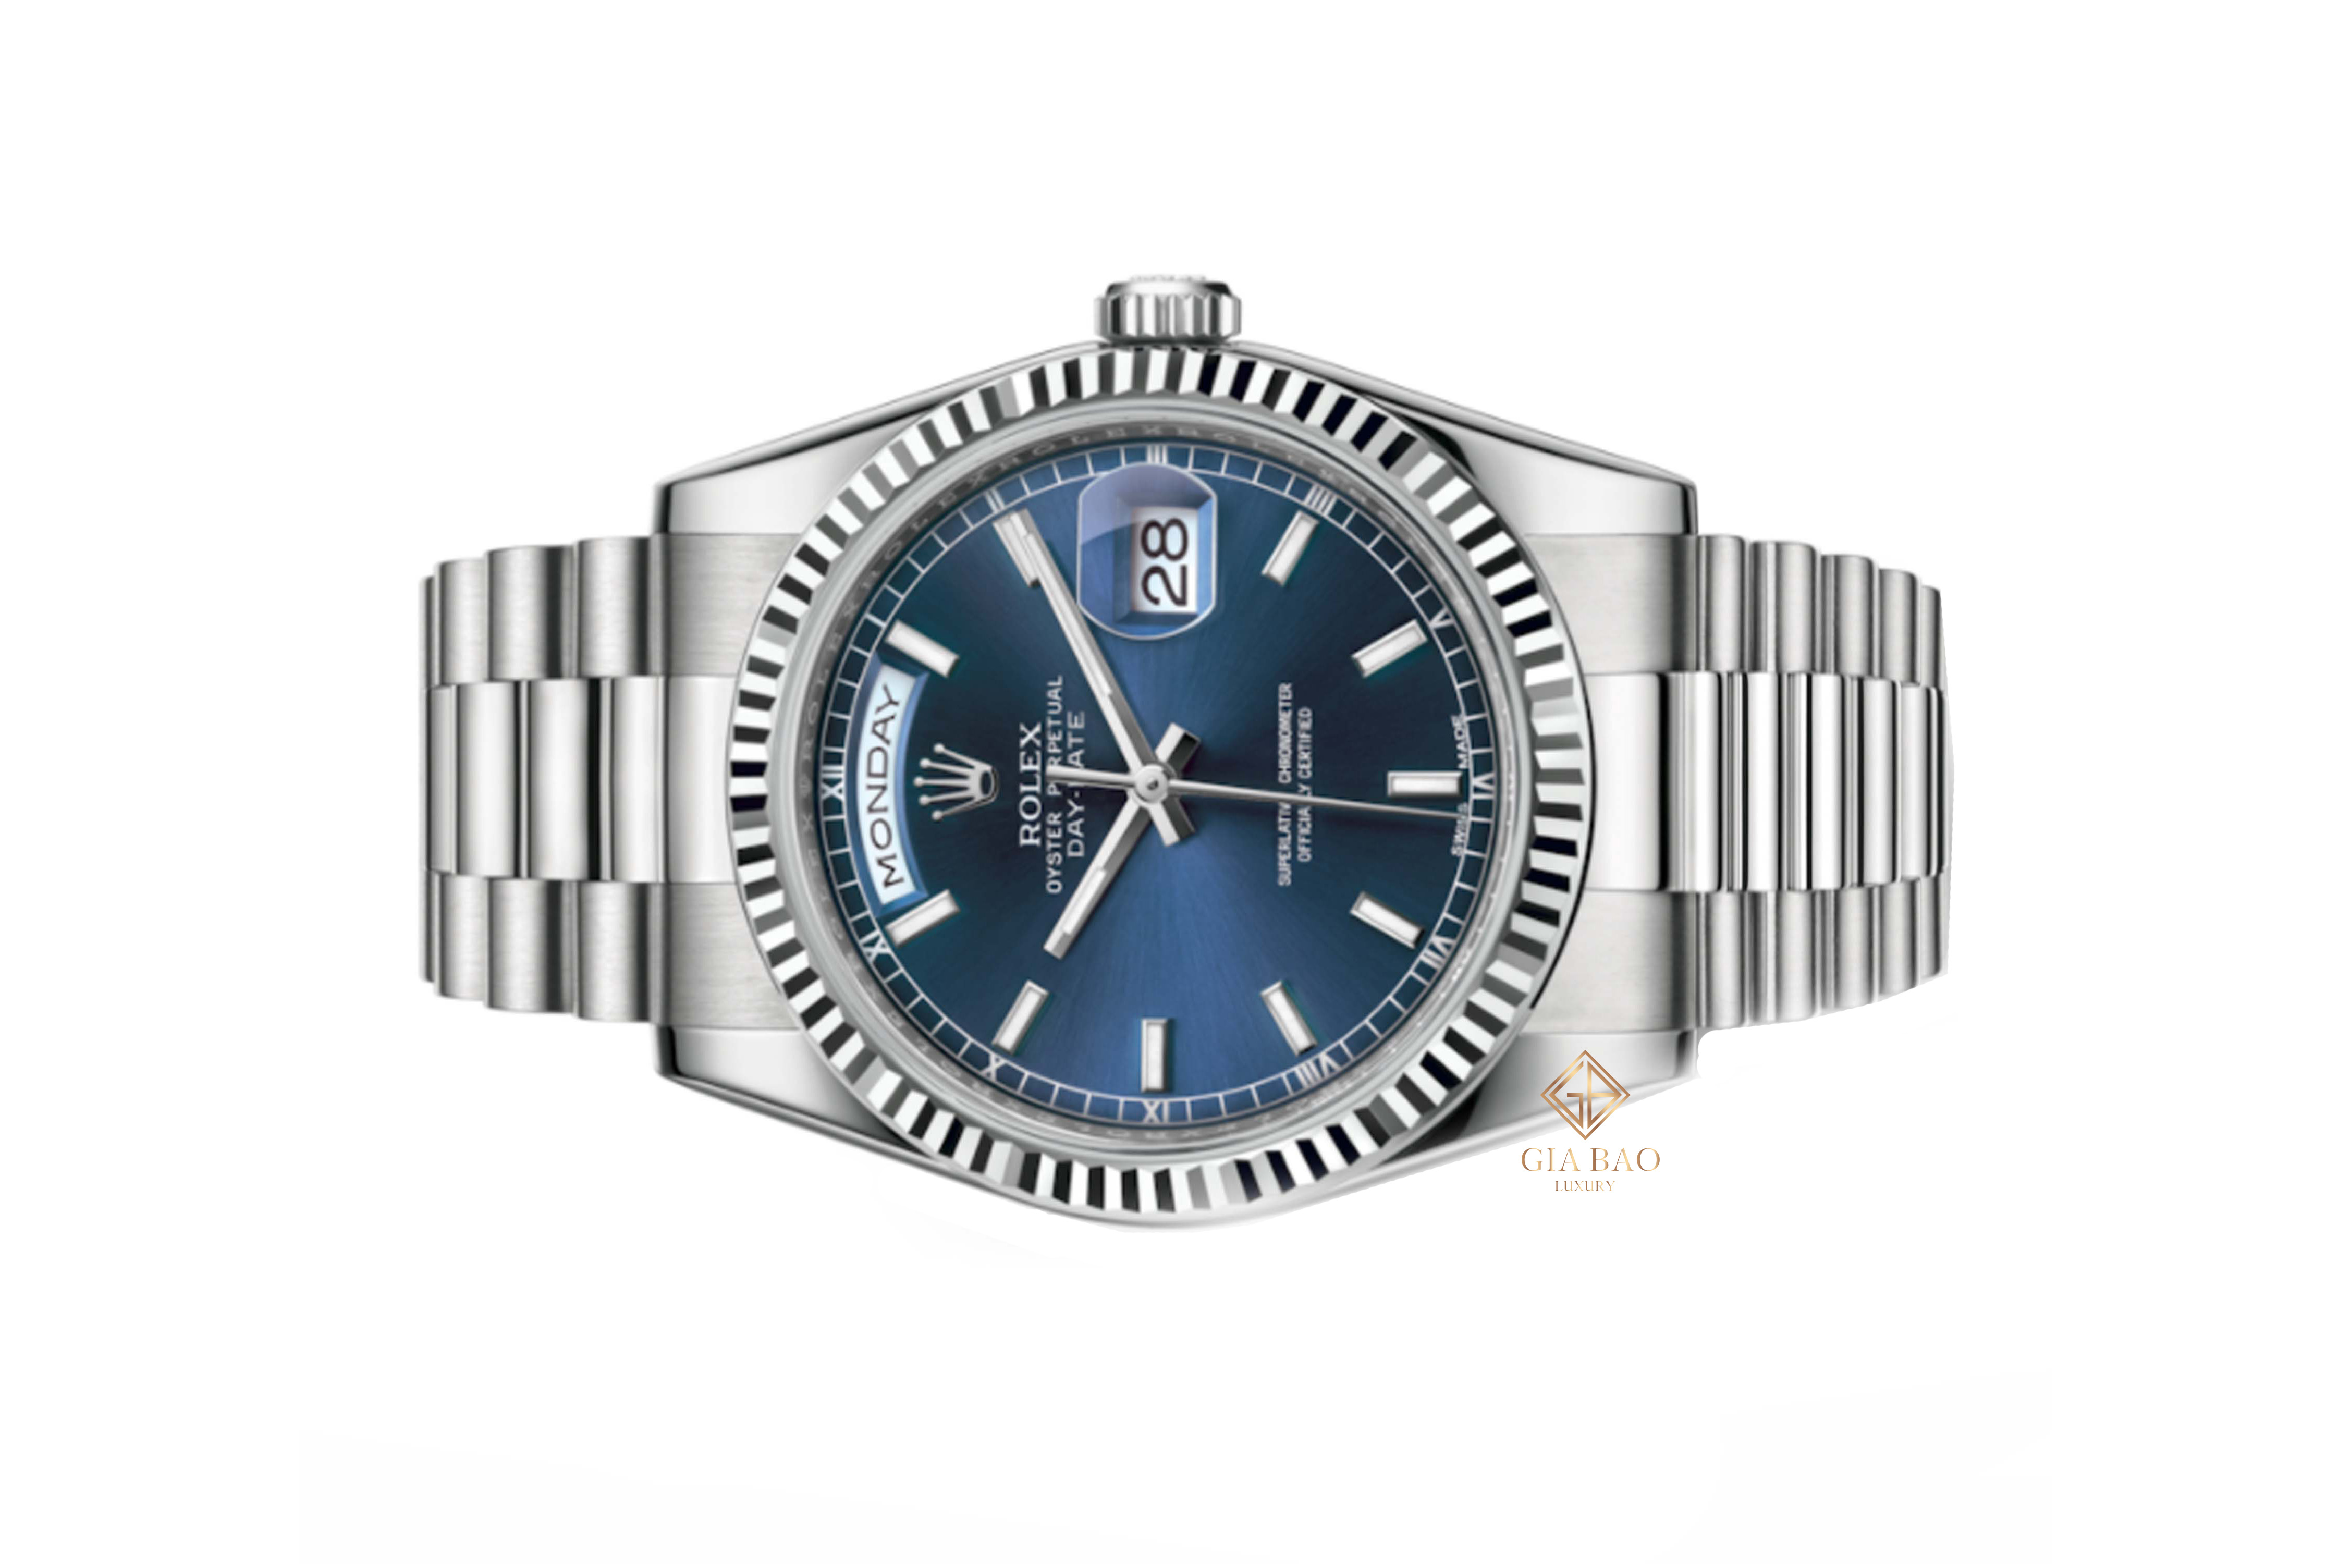 Đồng Hồ Rolex Day Date 36 118239 Mặt Số Xanh